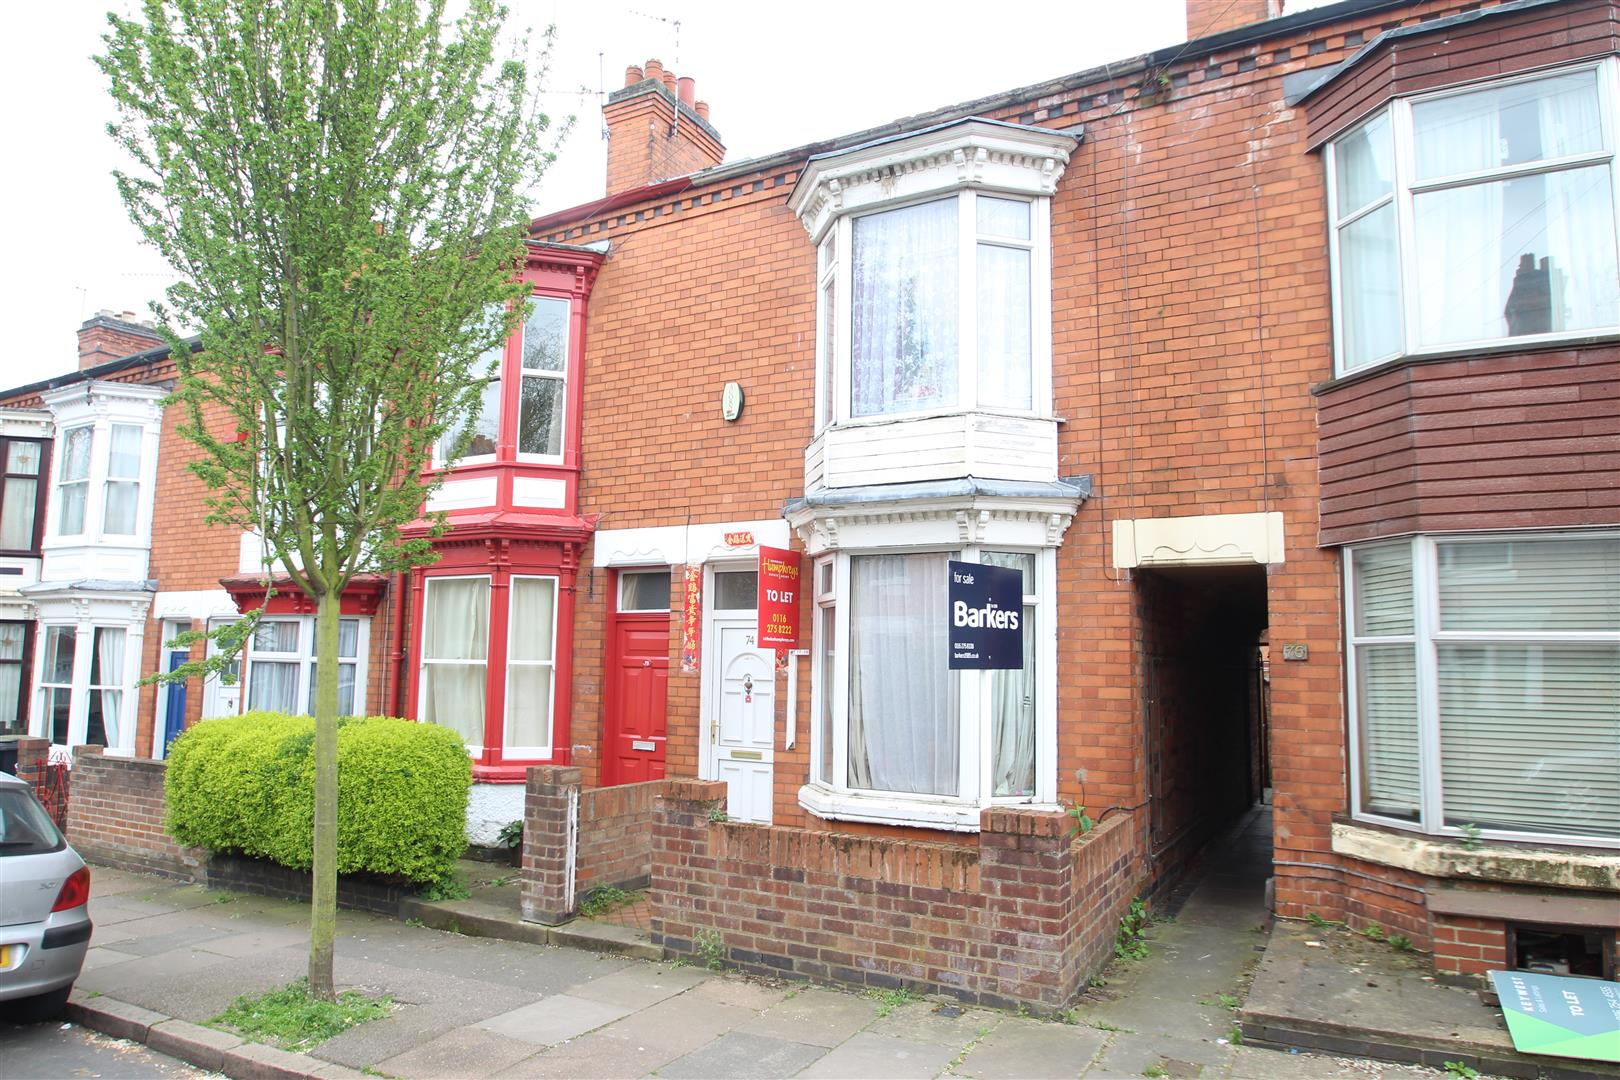 Property for sale in Barclay Street, Leicester